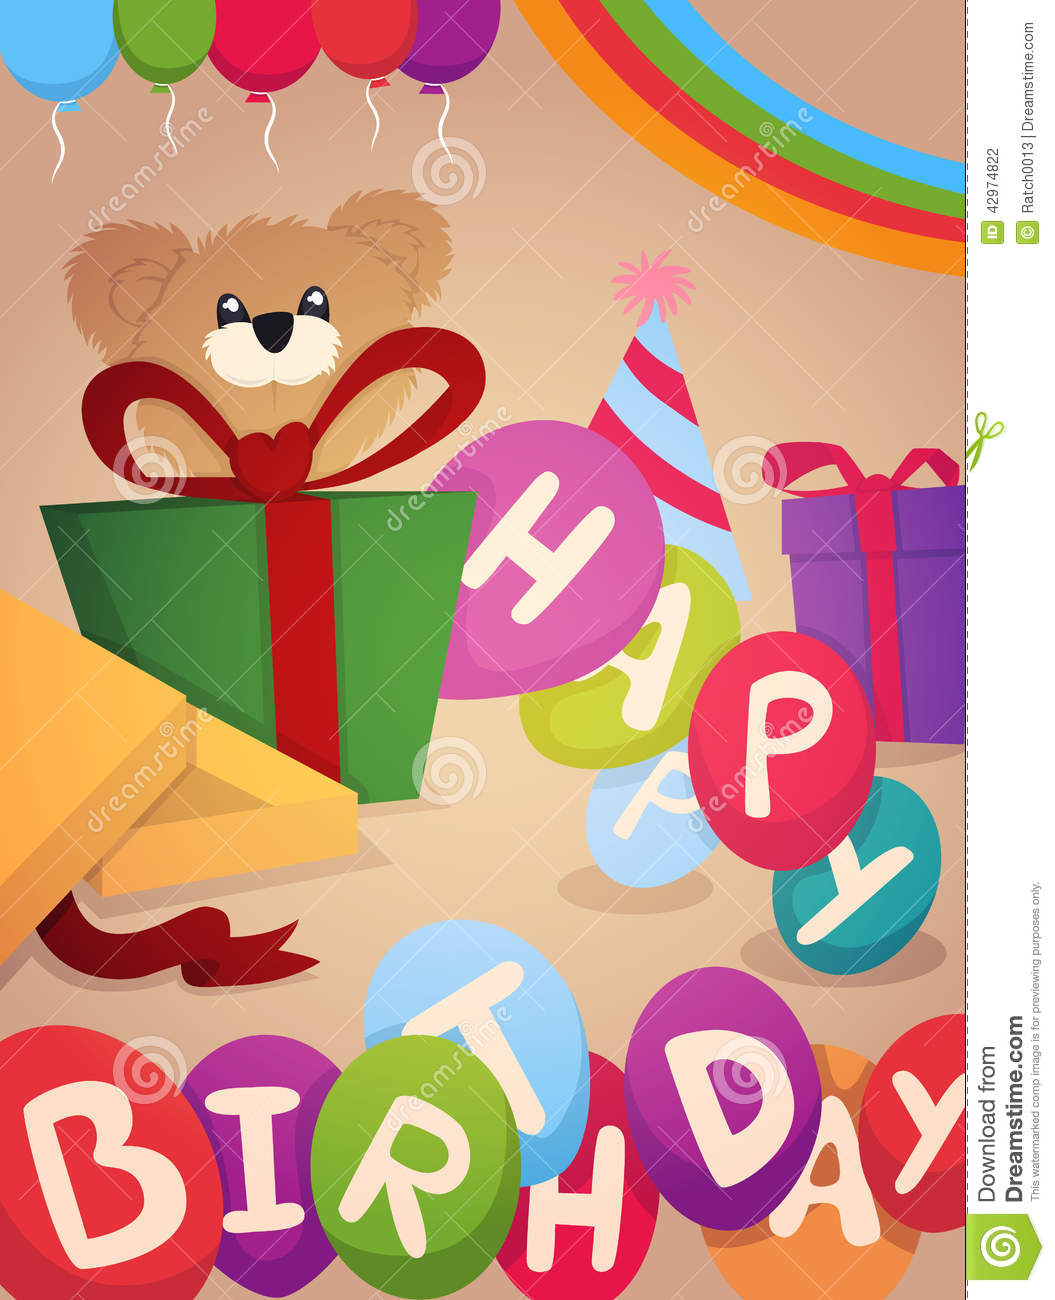 greeting cards design for birthday ; happy-birthday-greeting-card-design-eps-vector-format-42974822